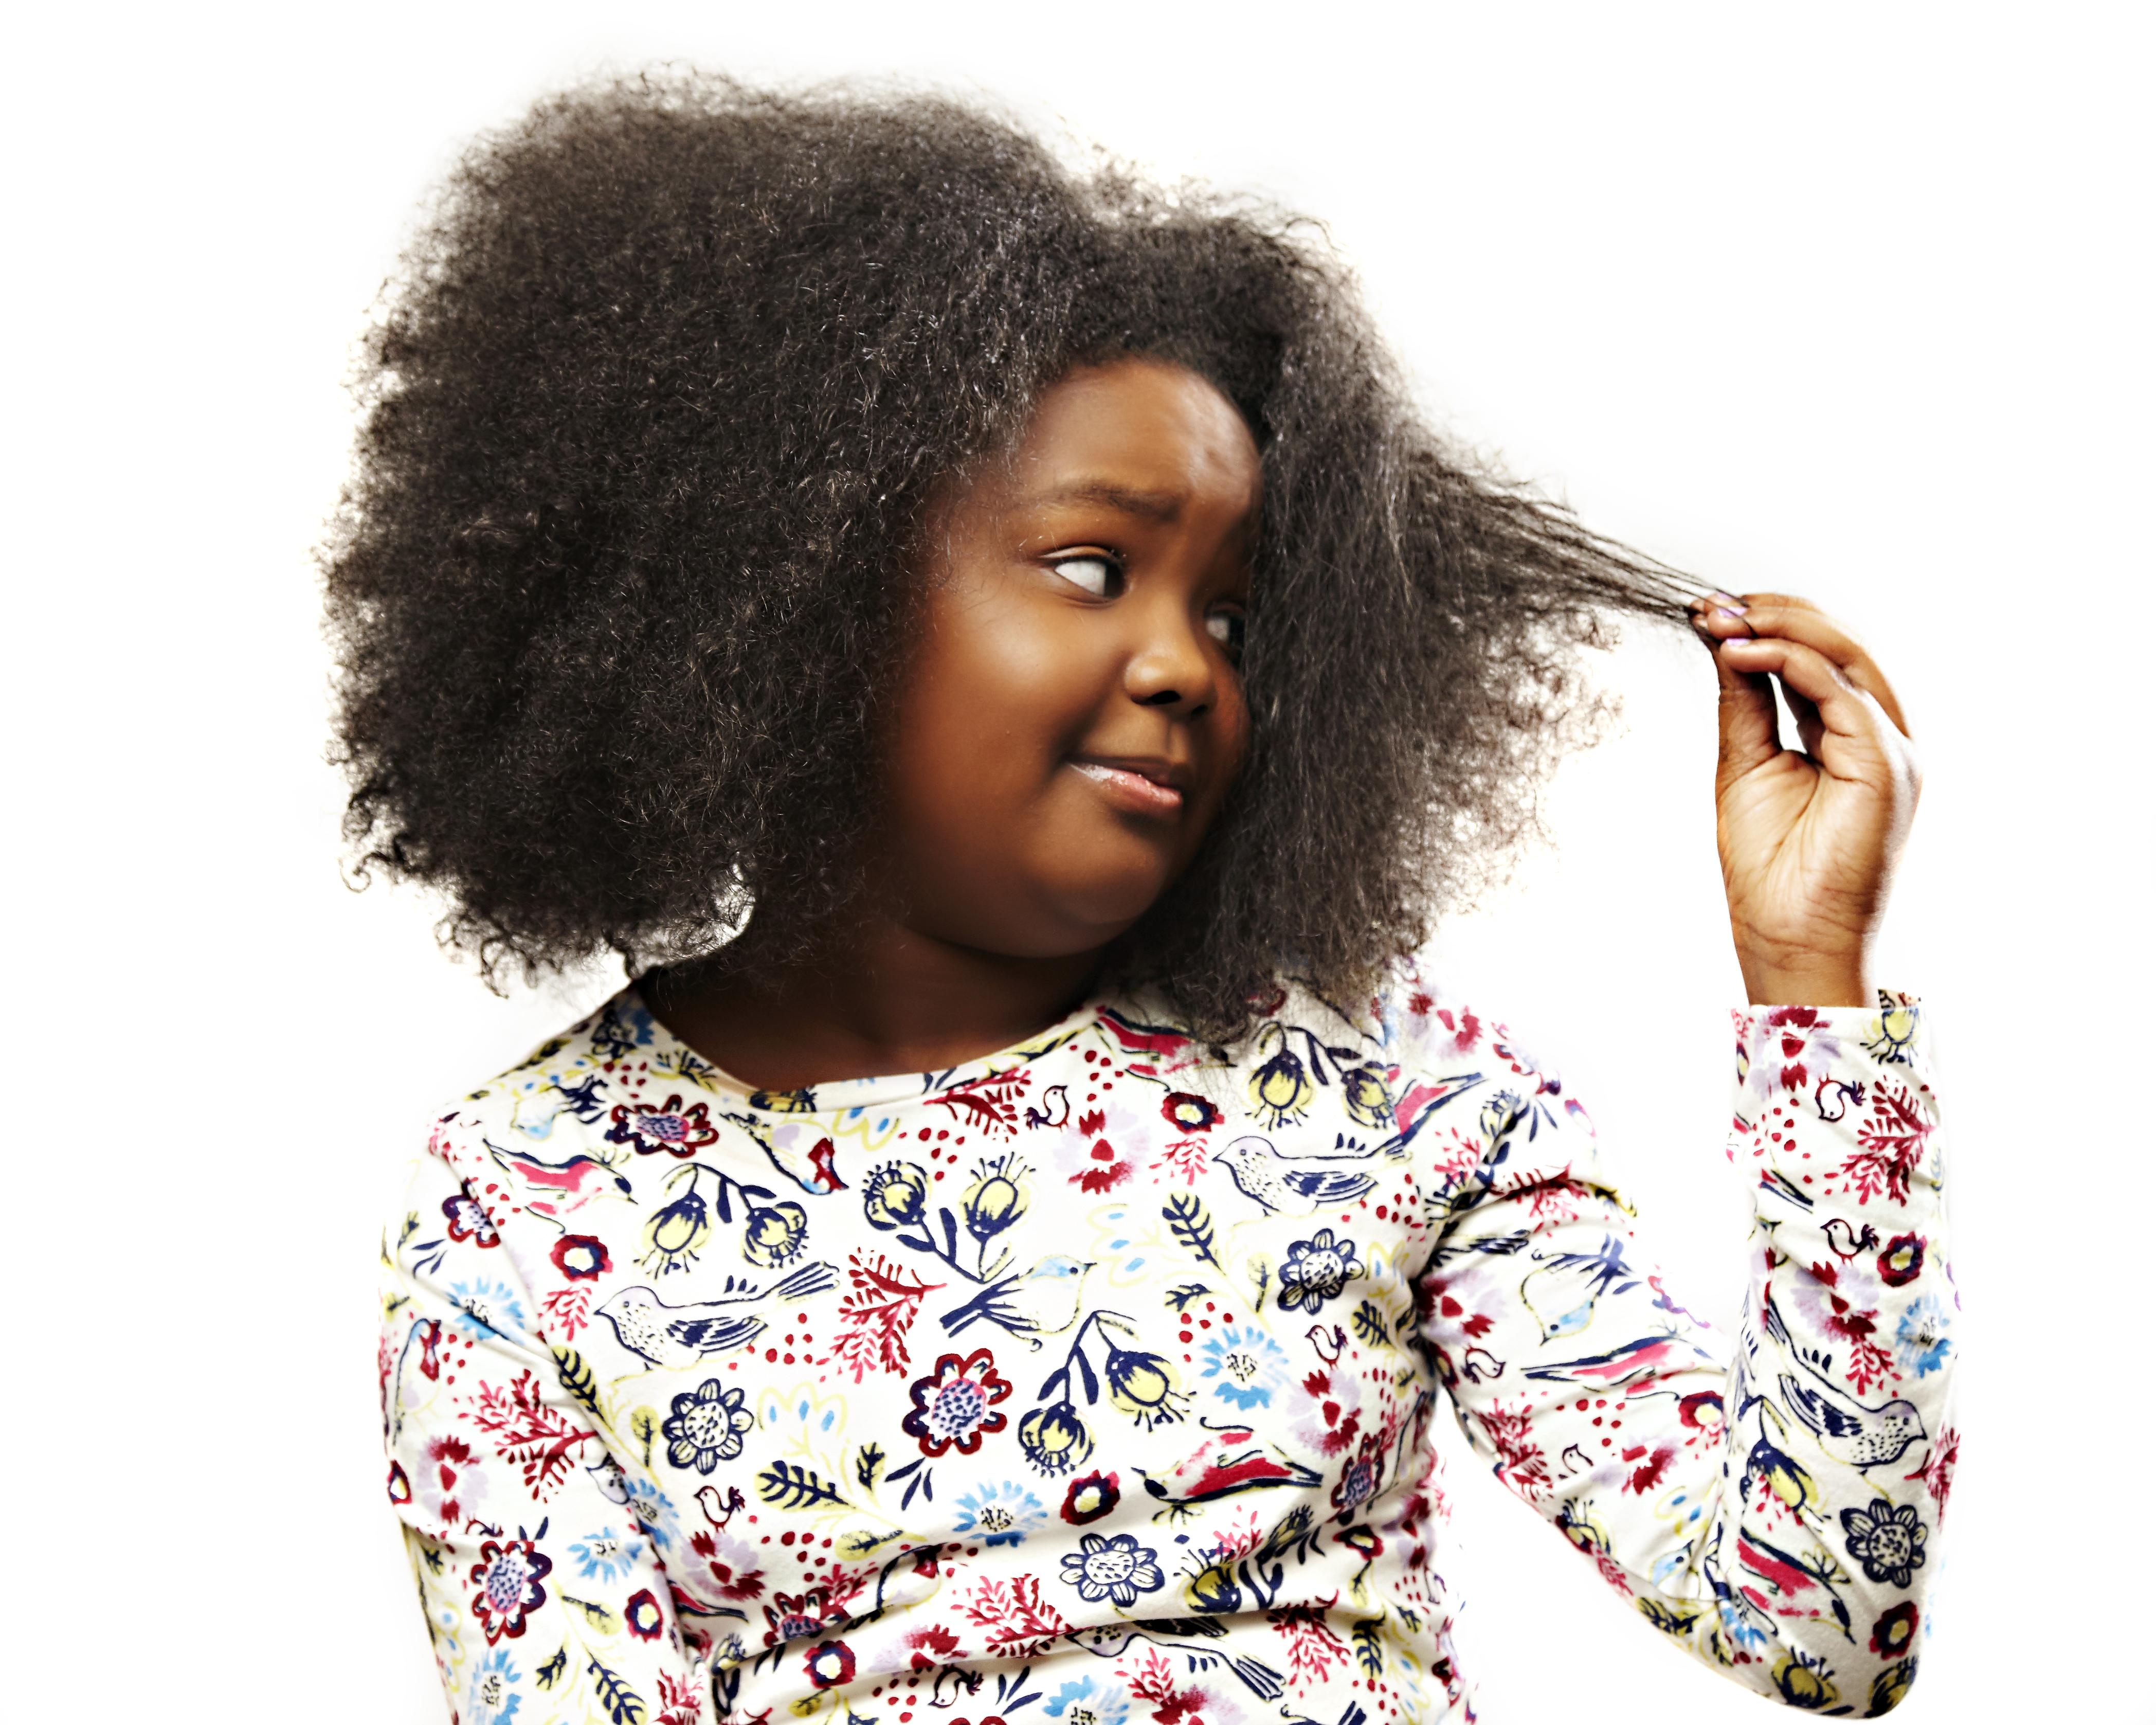 Basic Care and Styling of Black Girls' Hair